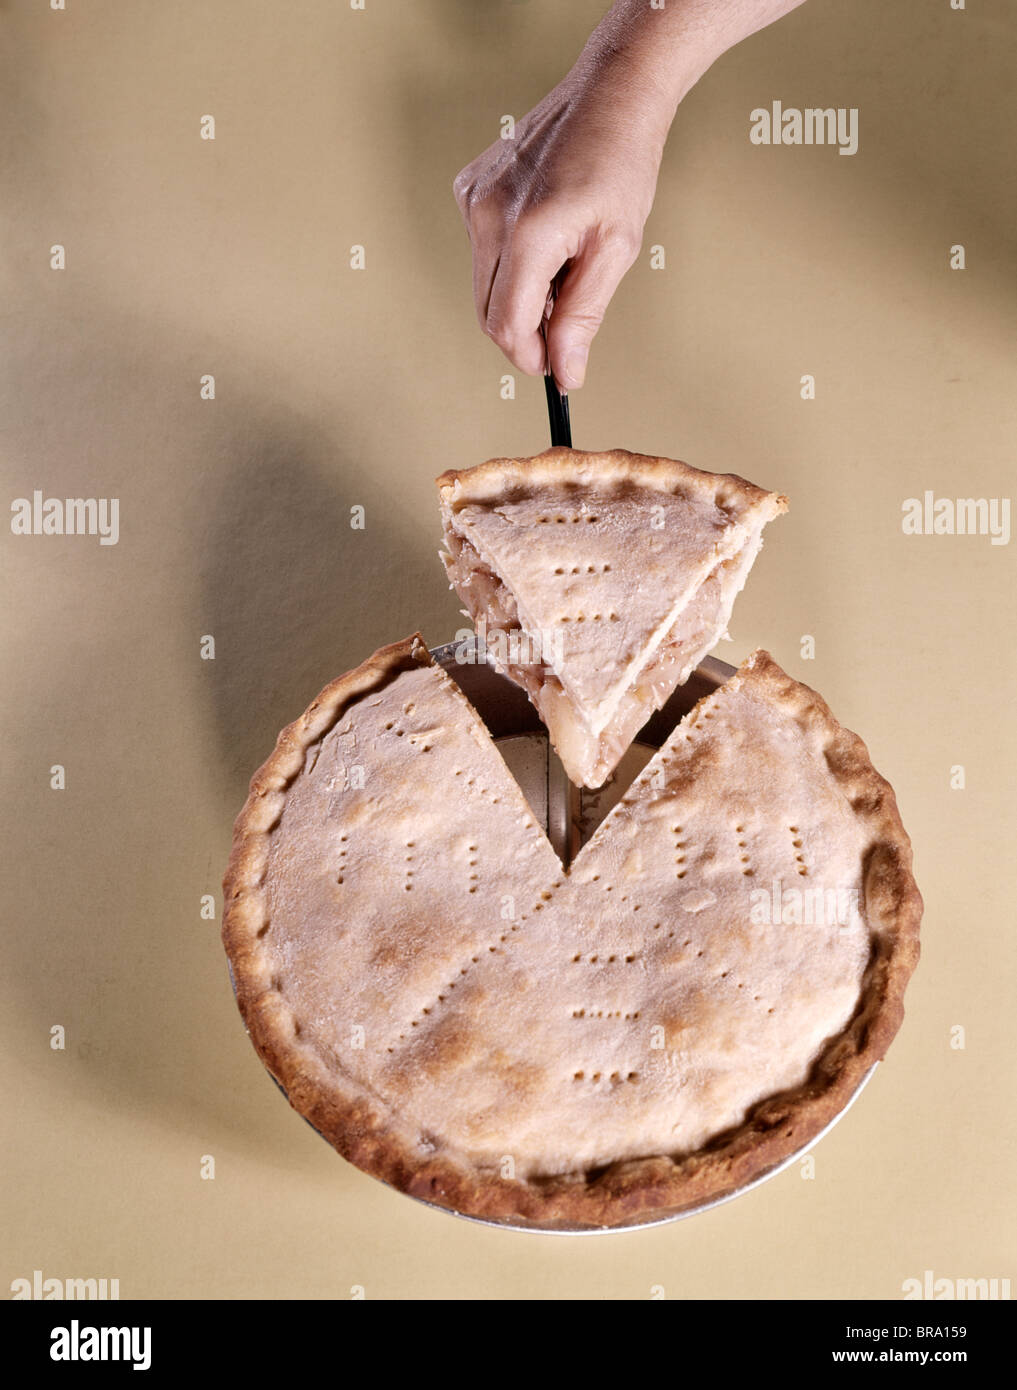 1970s HAND SERVING WEDGE SLICE OF APPLE PIE - Stock Image